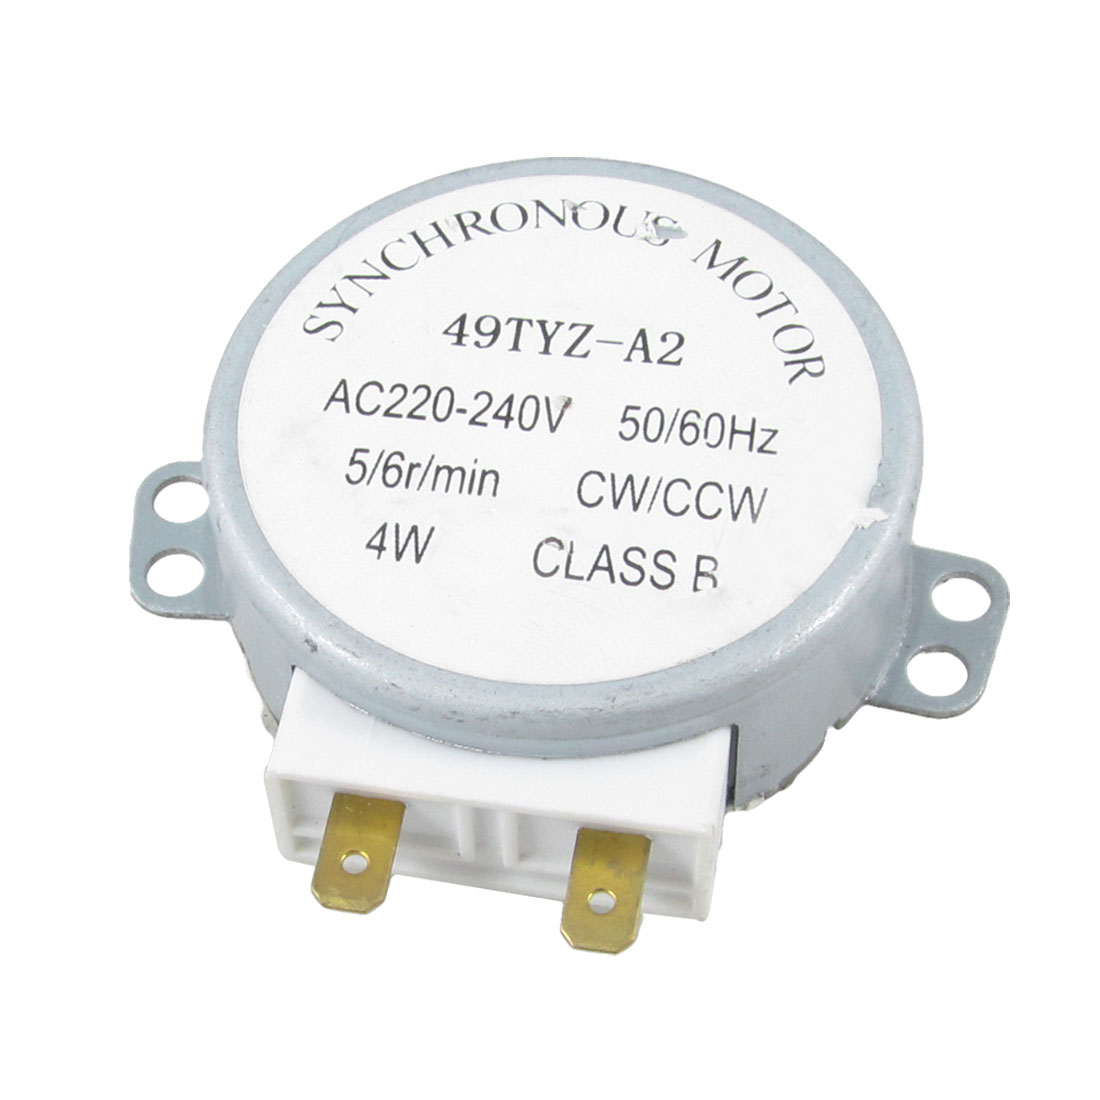 Microwave Oven Turntable Synchronous Motor 4W AC 220-240V 5/6RPM CW/CCW